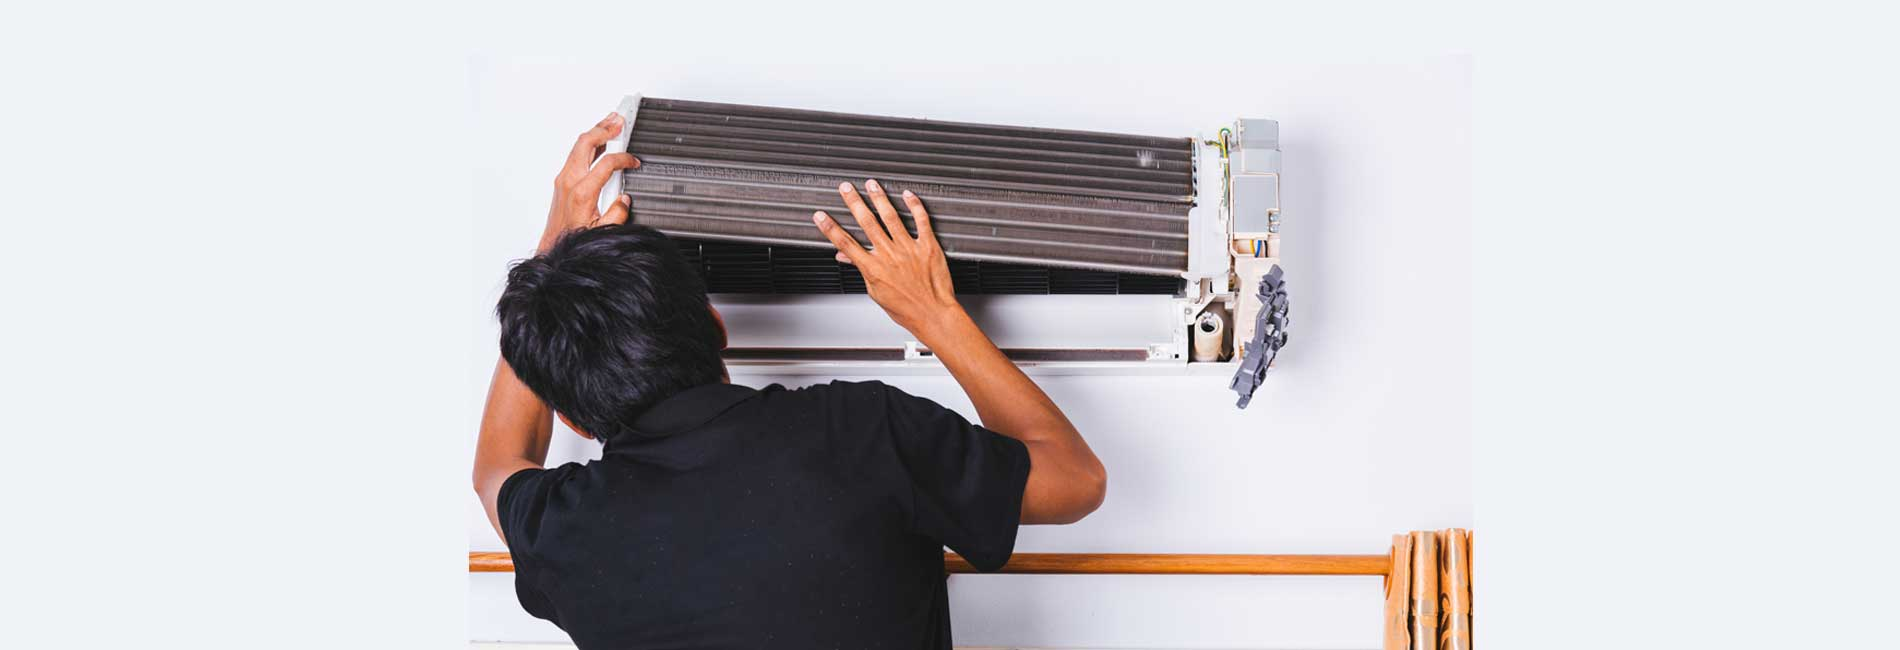 IFB Split AC Uninstallation in Vyasarpadi